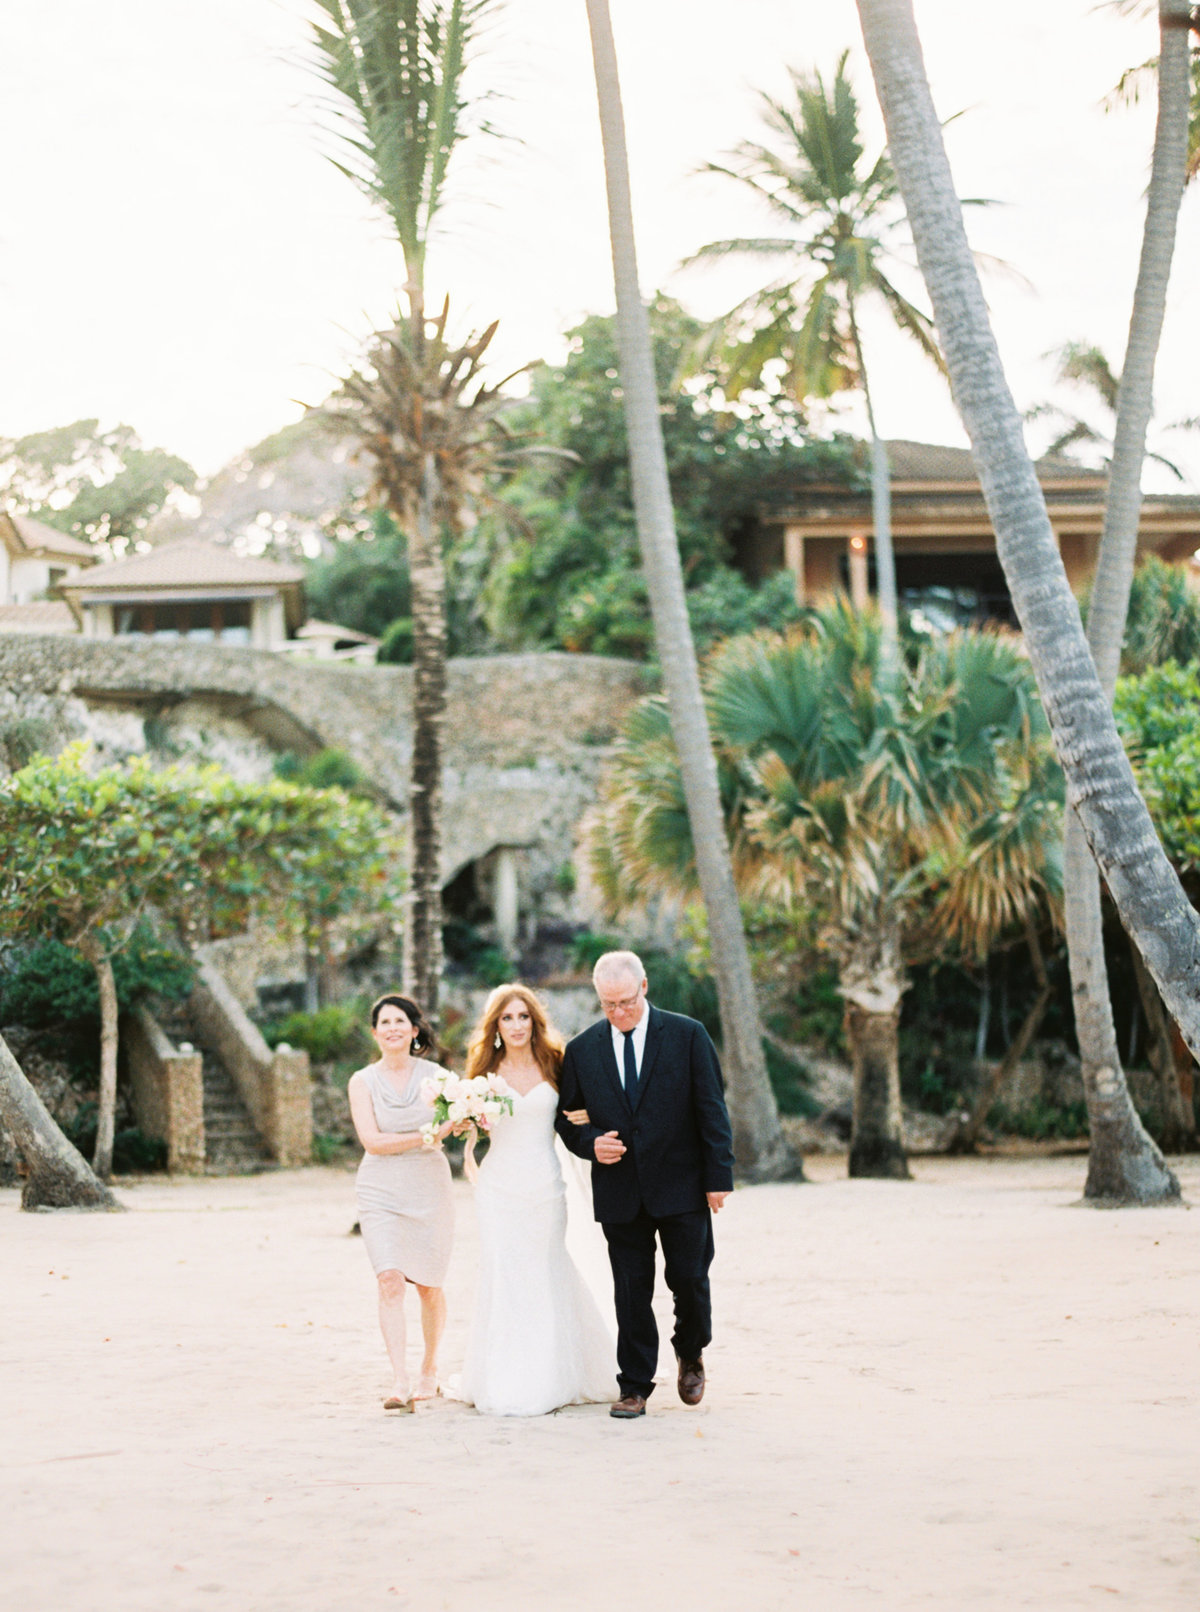 Dominican Republic Wedding - Mary Claire Photography-14